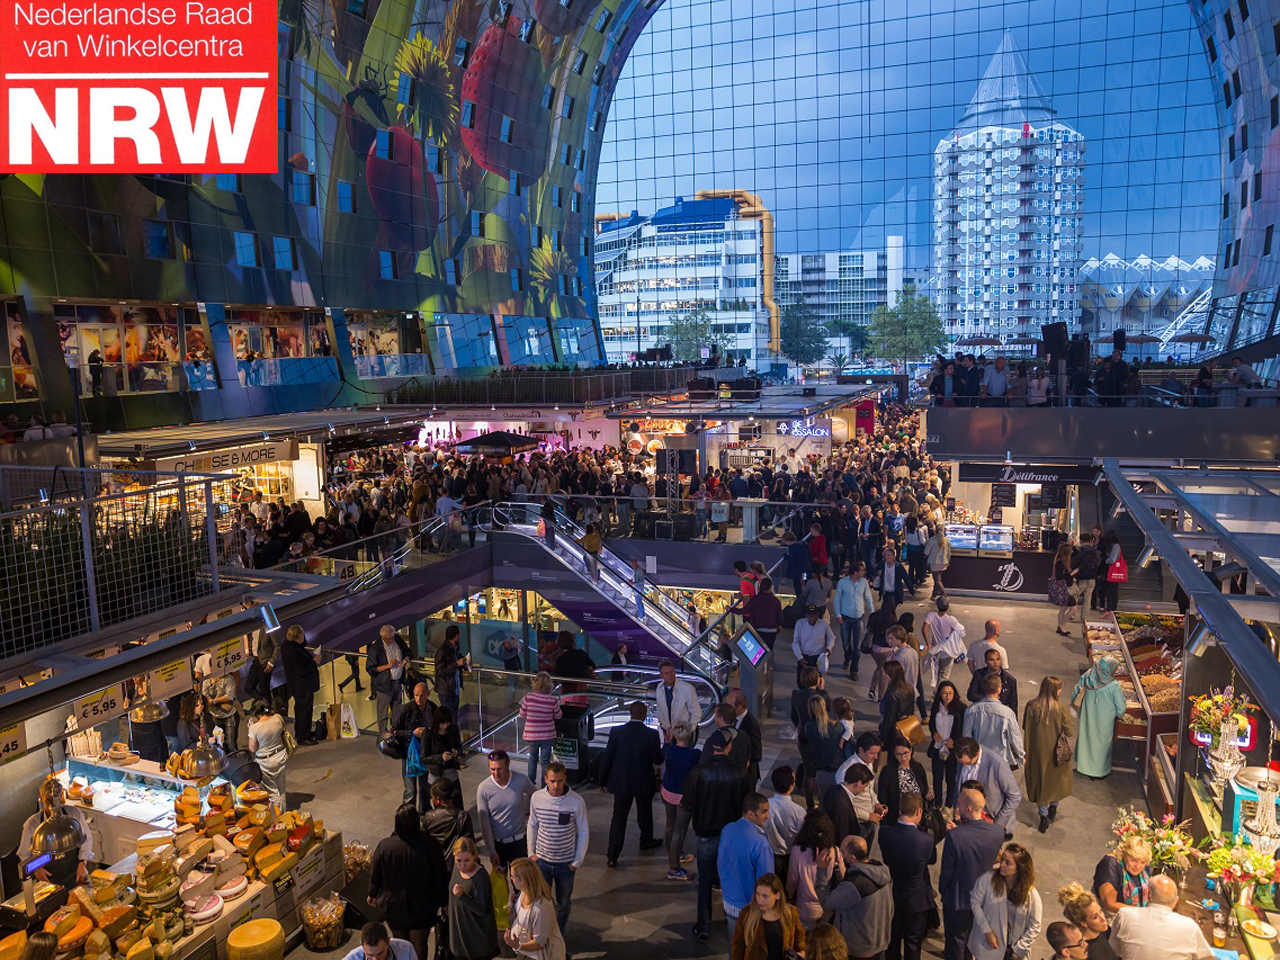 Markthal wins NRW Jaarprijs 2015, a national award for best retail building